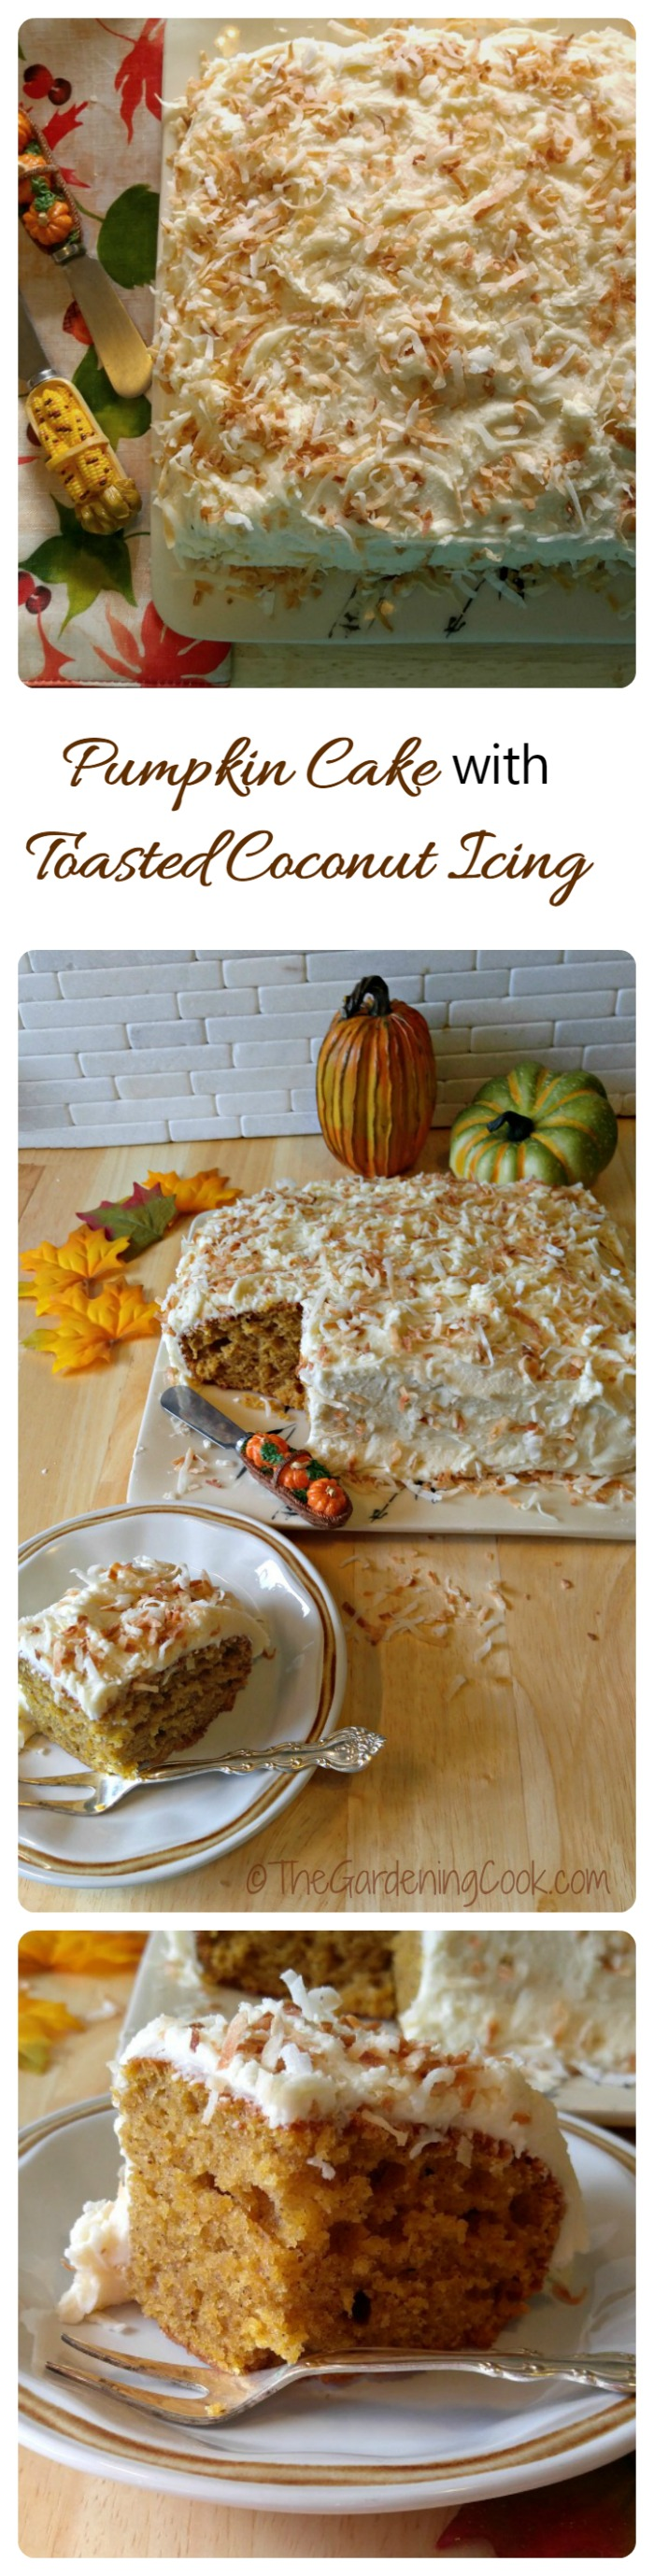 Pumpkin Cake with Toasted Coconut Frosting